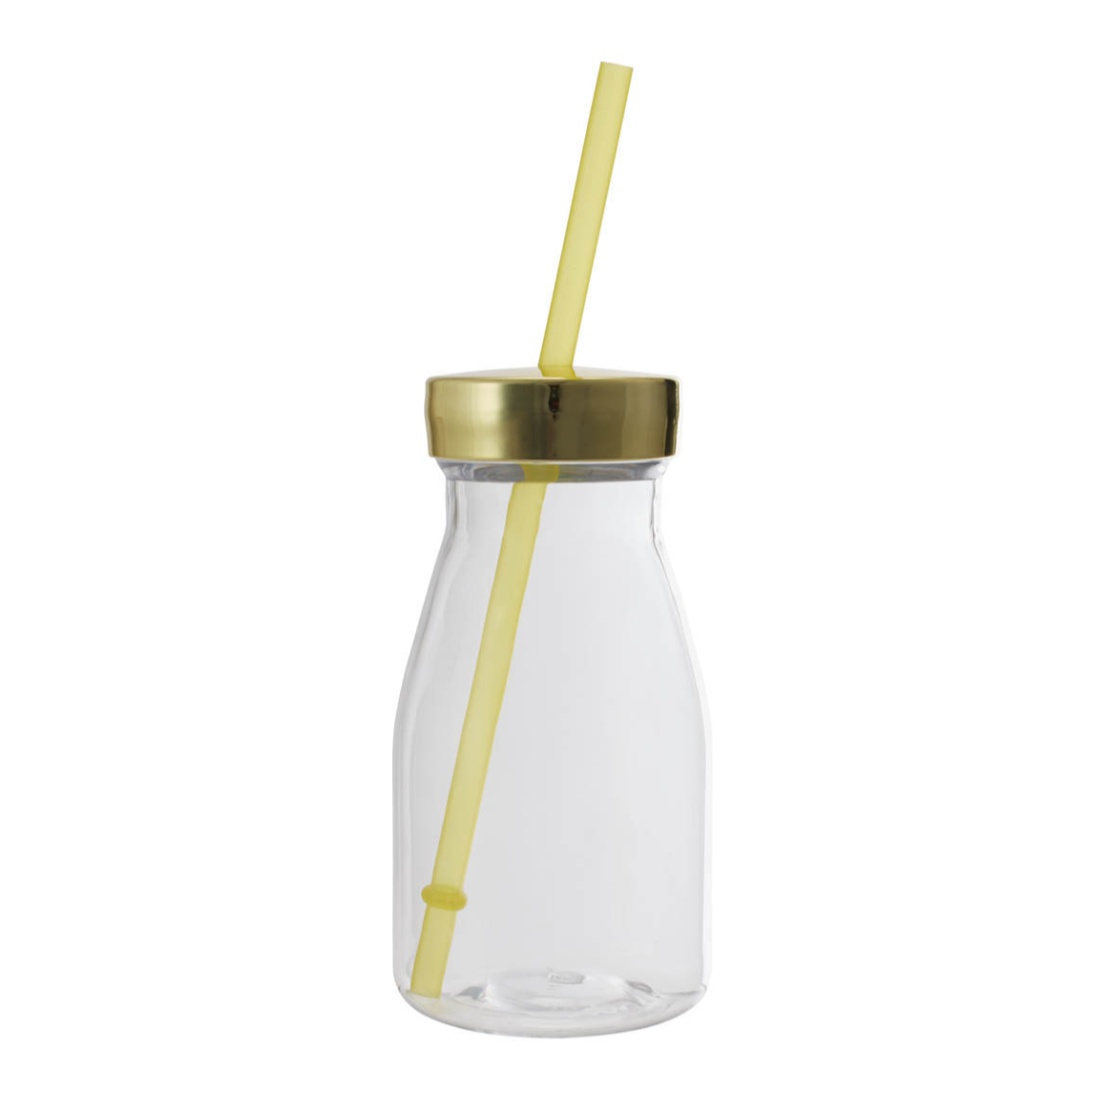 Milk Bottle 350 Ml Plastic Glass Bottles in Transparent Bottle & Green Lid Colour by Living Essence